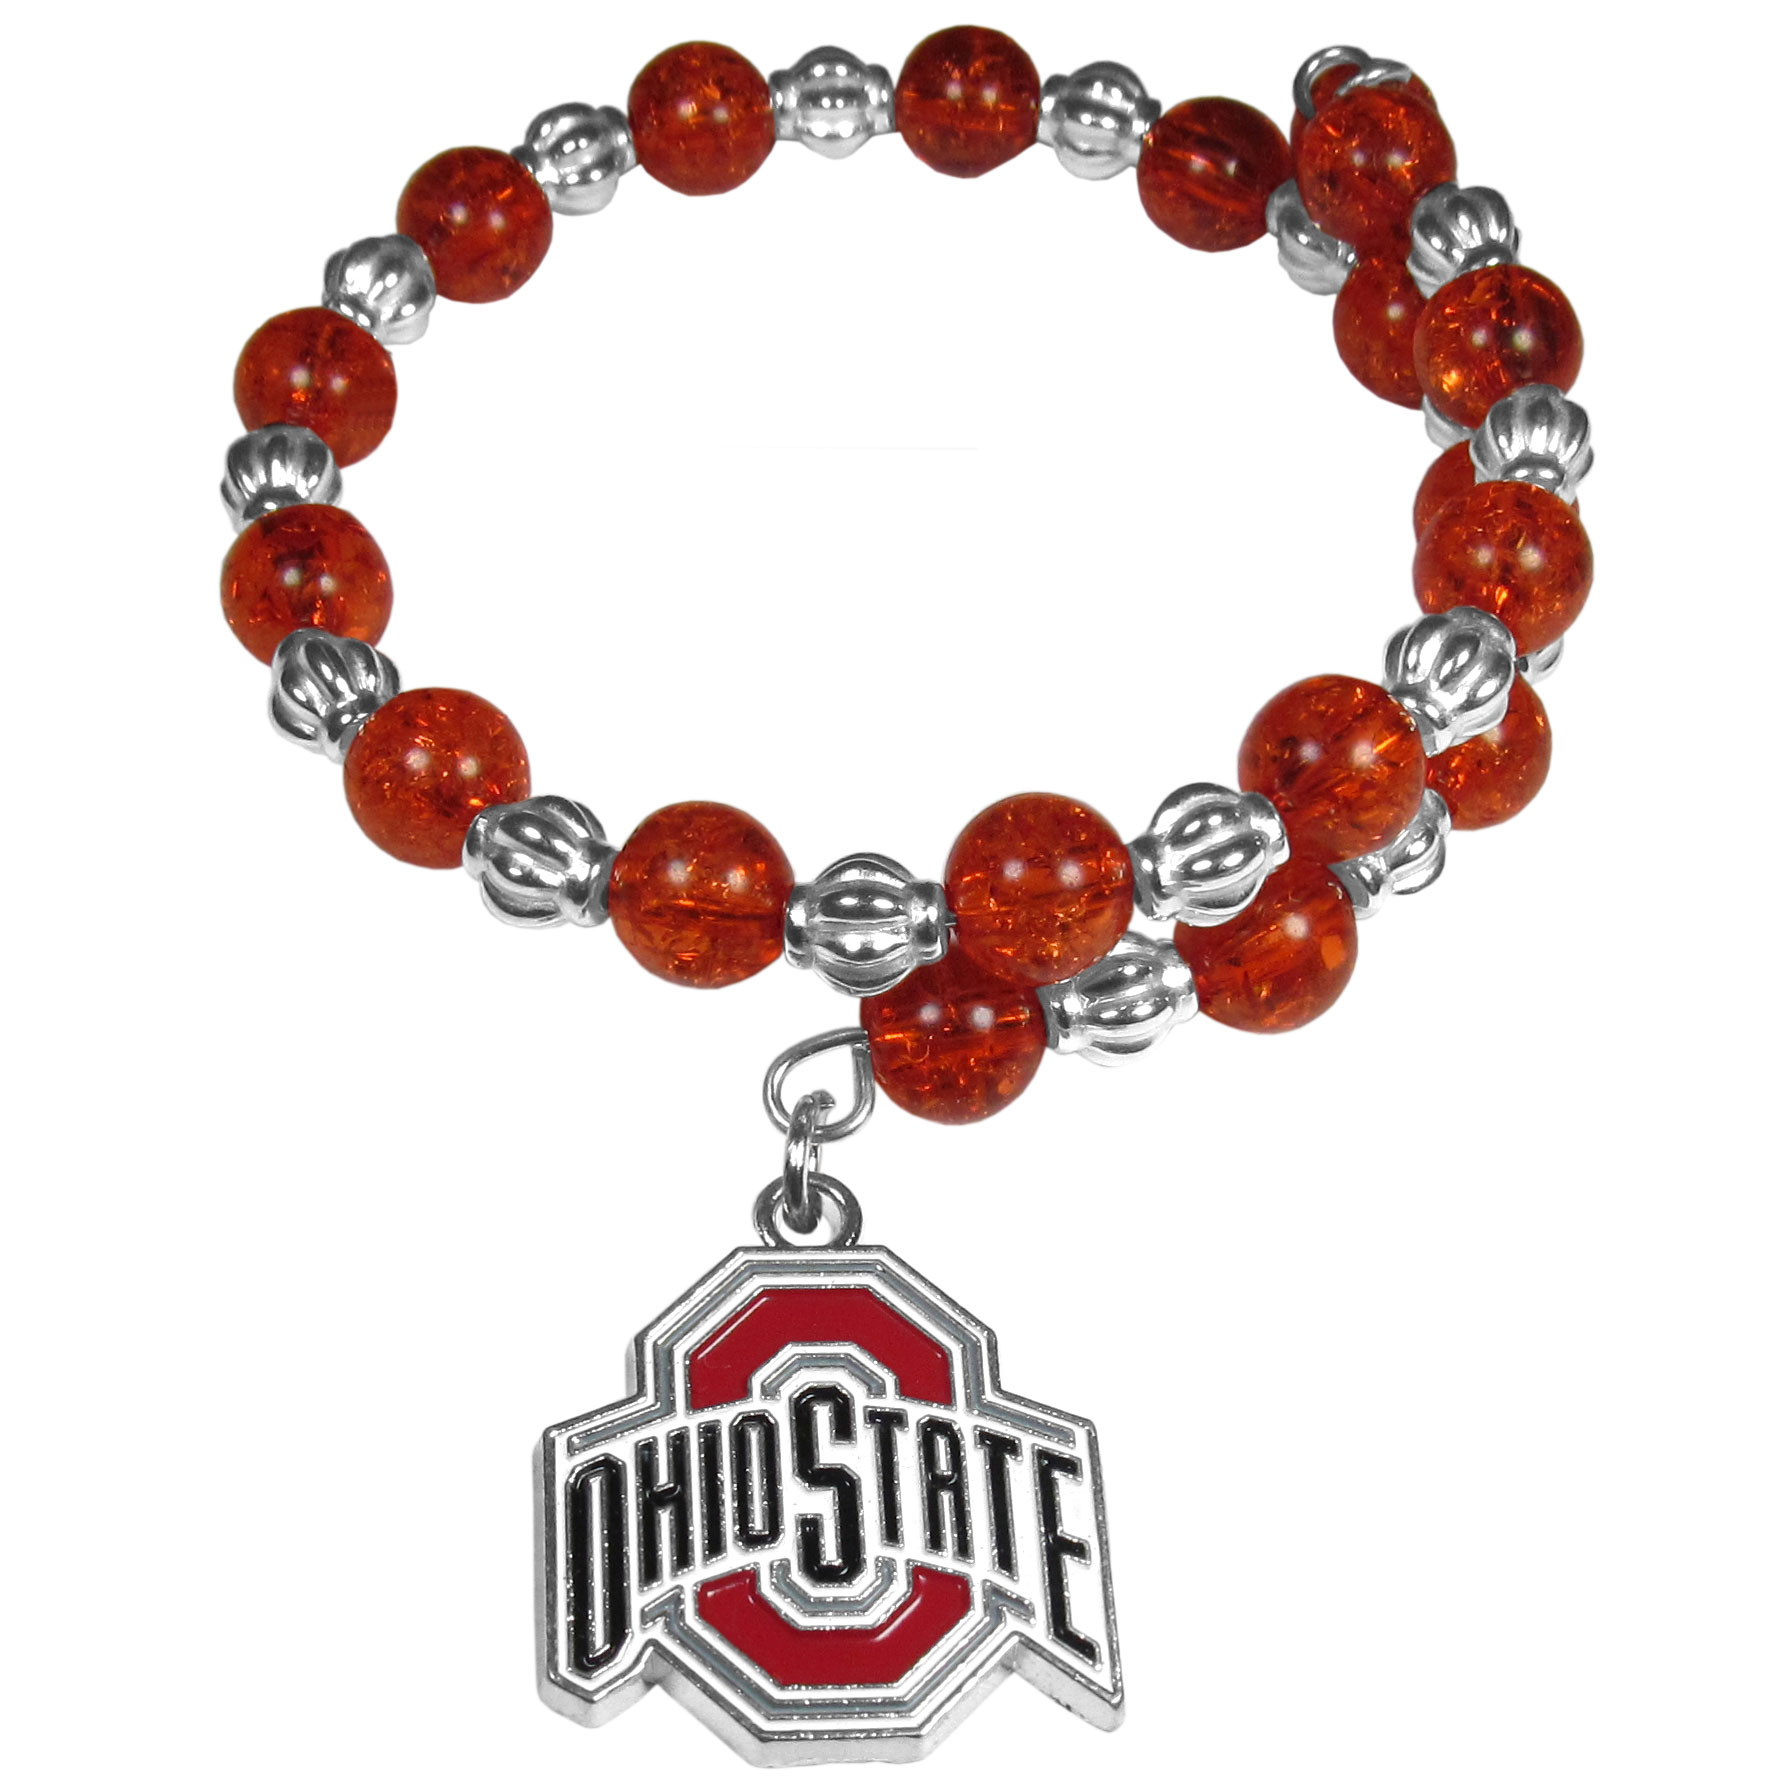 Ohio St. Buckeyes Bead Memory Wire Bracelet - Our Ohio St. Buckeyes memory wire bead bracelet is trendy way to show off your love of the game. The double wrap bracelet is completely covered in 7.5 mm crystals that are broken up with silvertoned beads creating a designer look with a sporty twist. The bracelet features a fully cast, metal team charm that has expertly enameled team colors. This fashion jewelry piece is a must-have for the die-hard fan that chic look that can dress up any outfit.